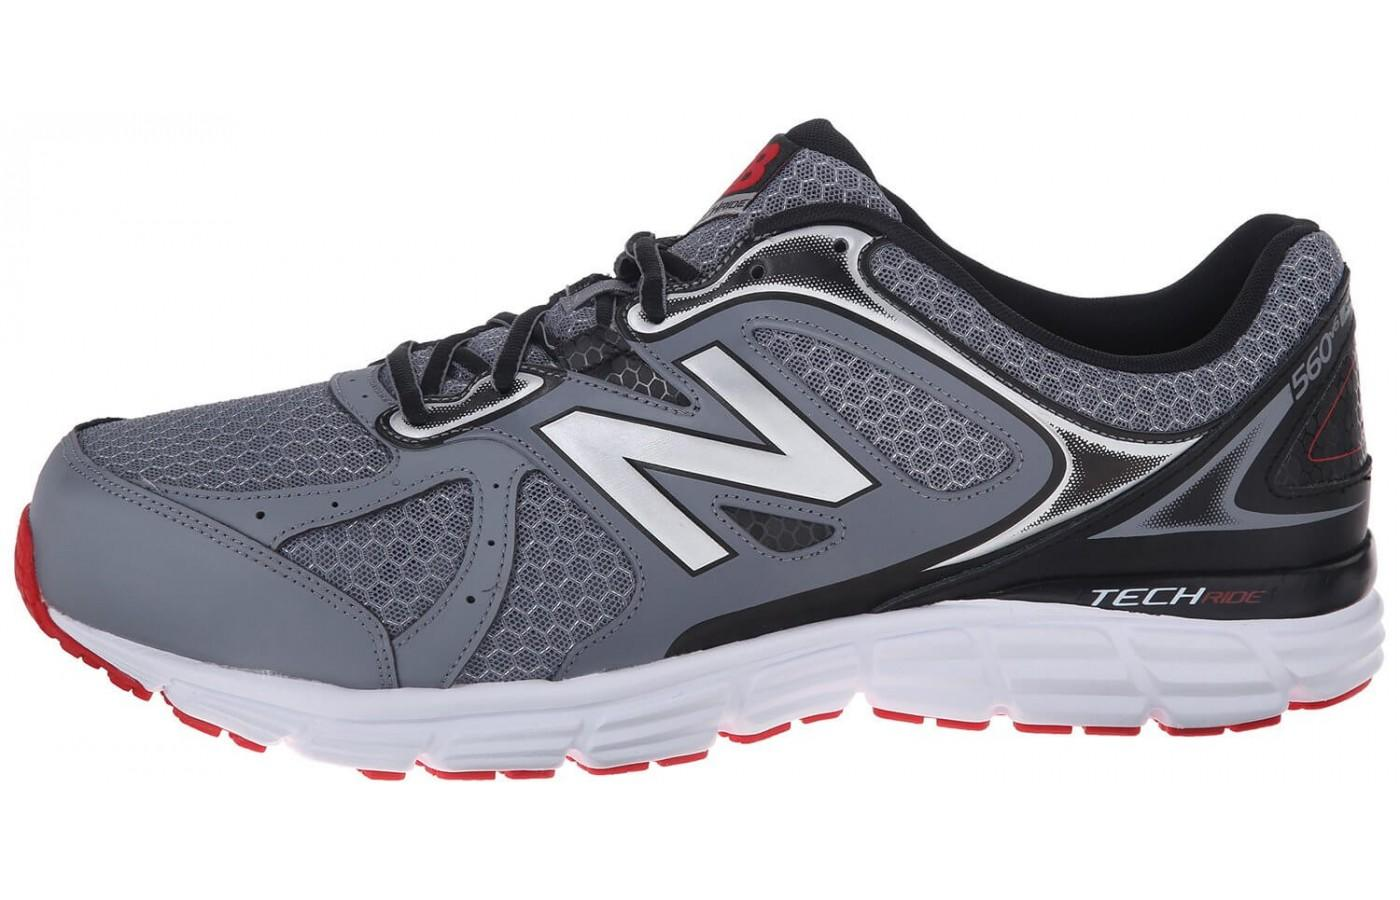 A view of the inner side of the New Balance 560V6.